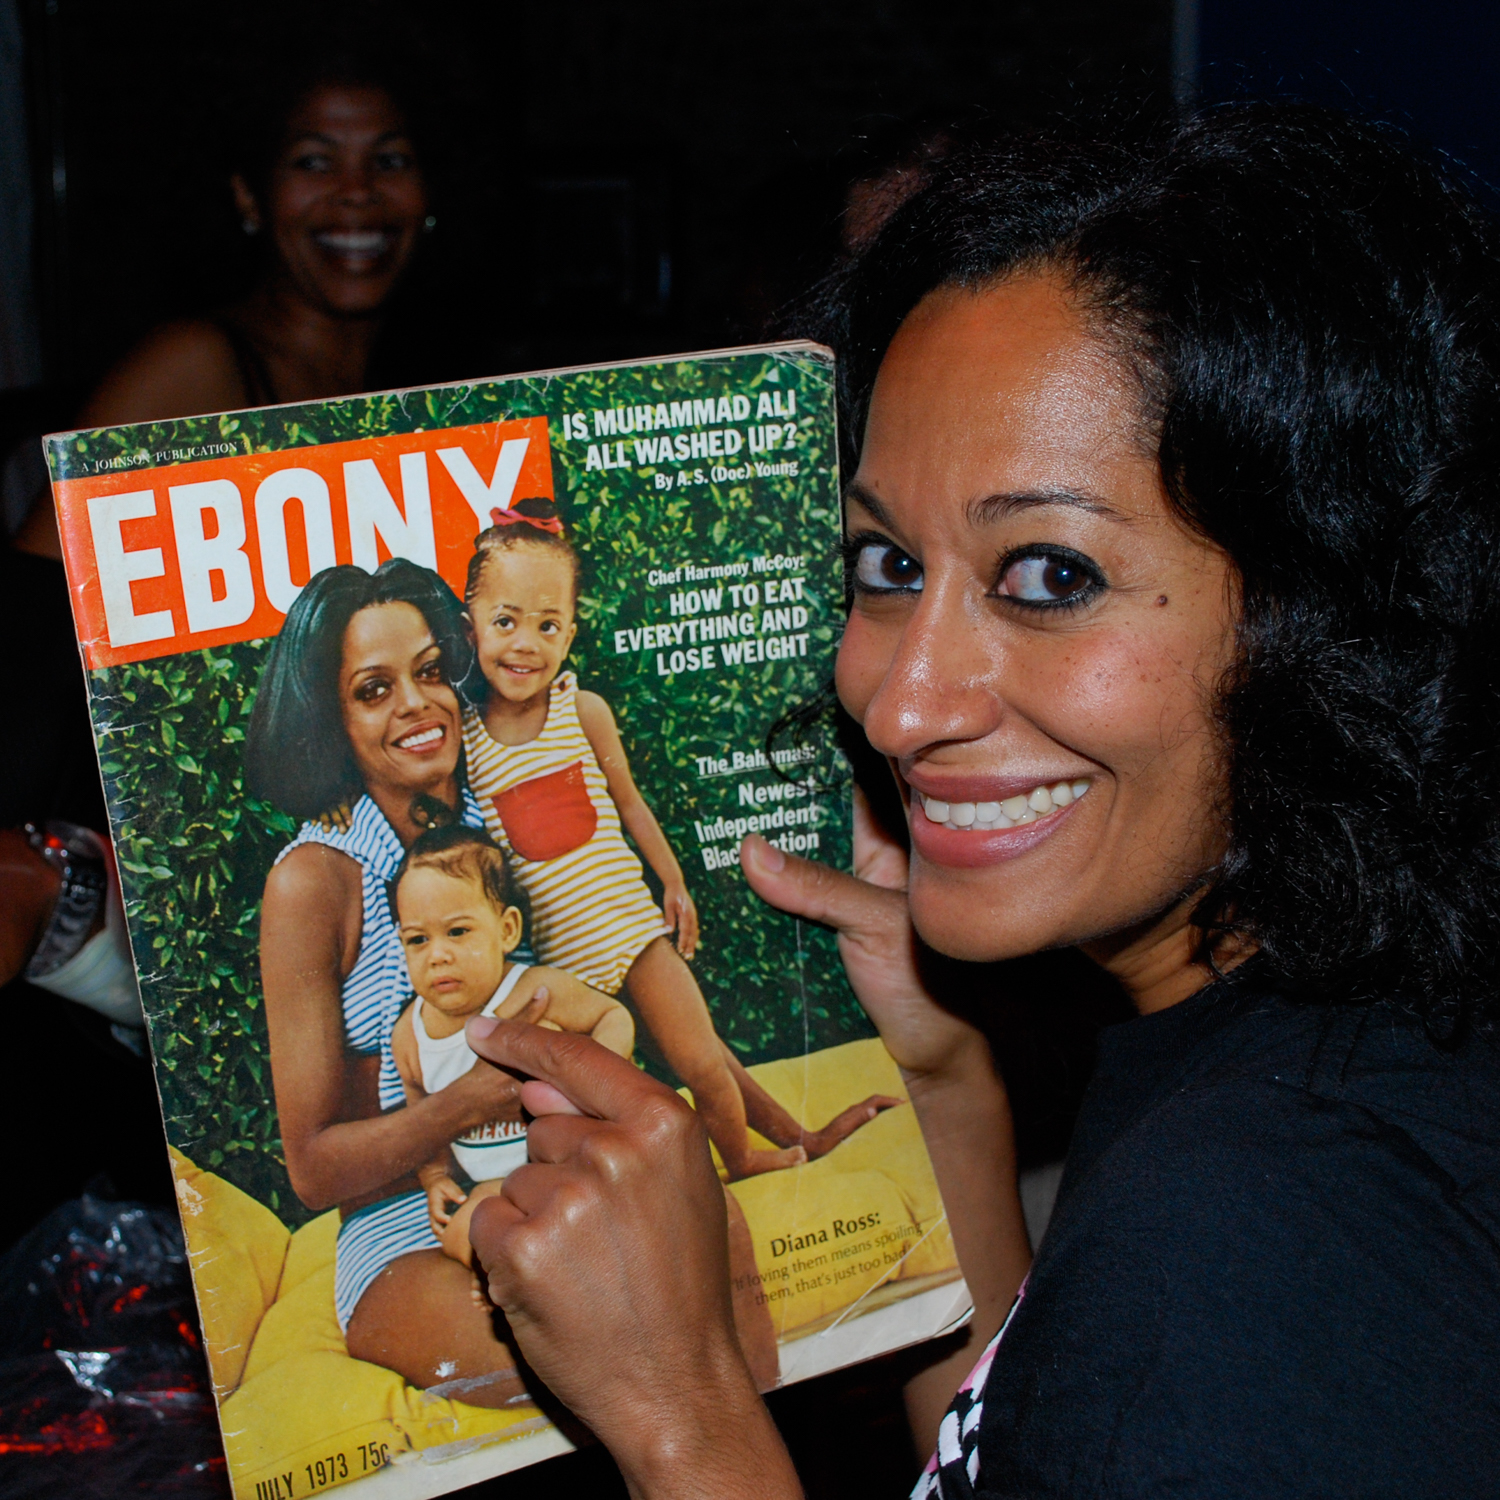 Tracee Ellis Ross with photo of herself and mother Diana Ross, Detroit, 2008